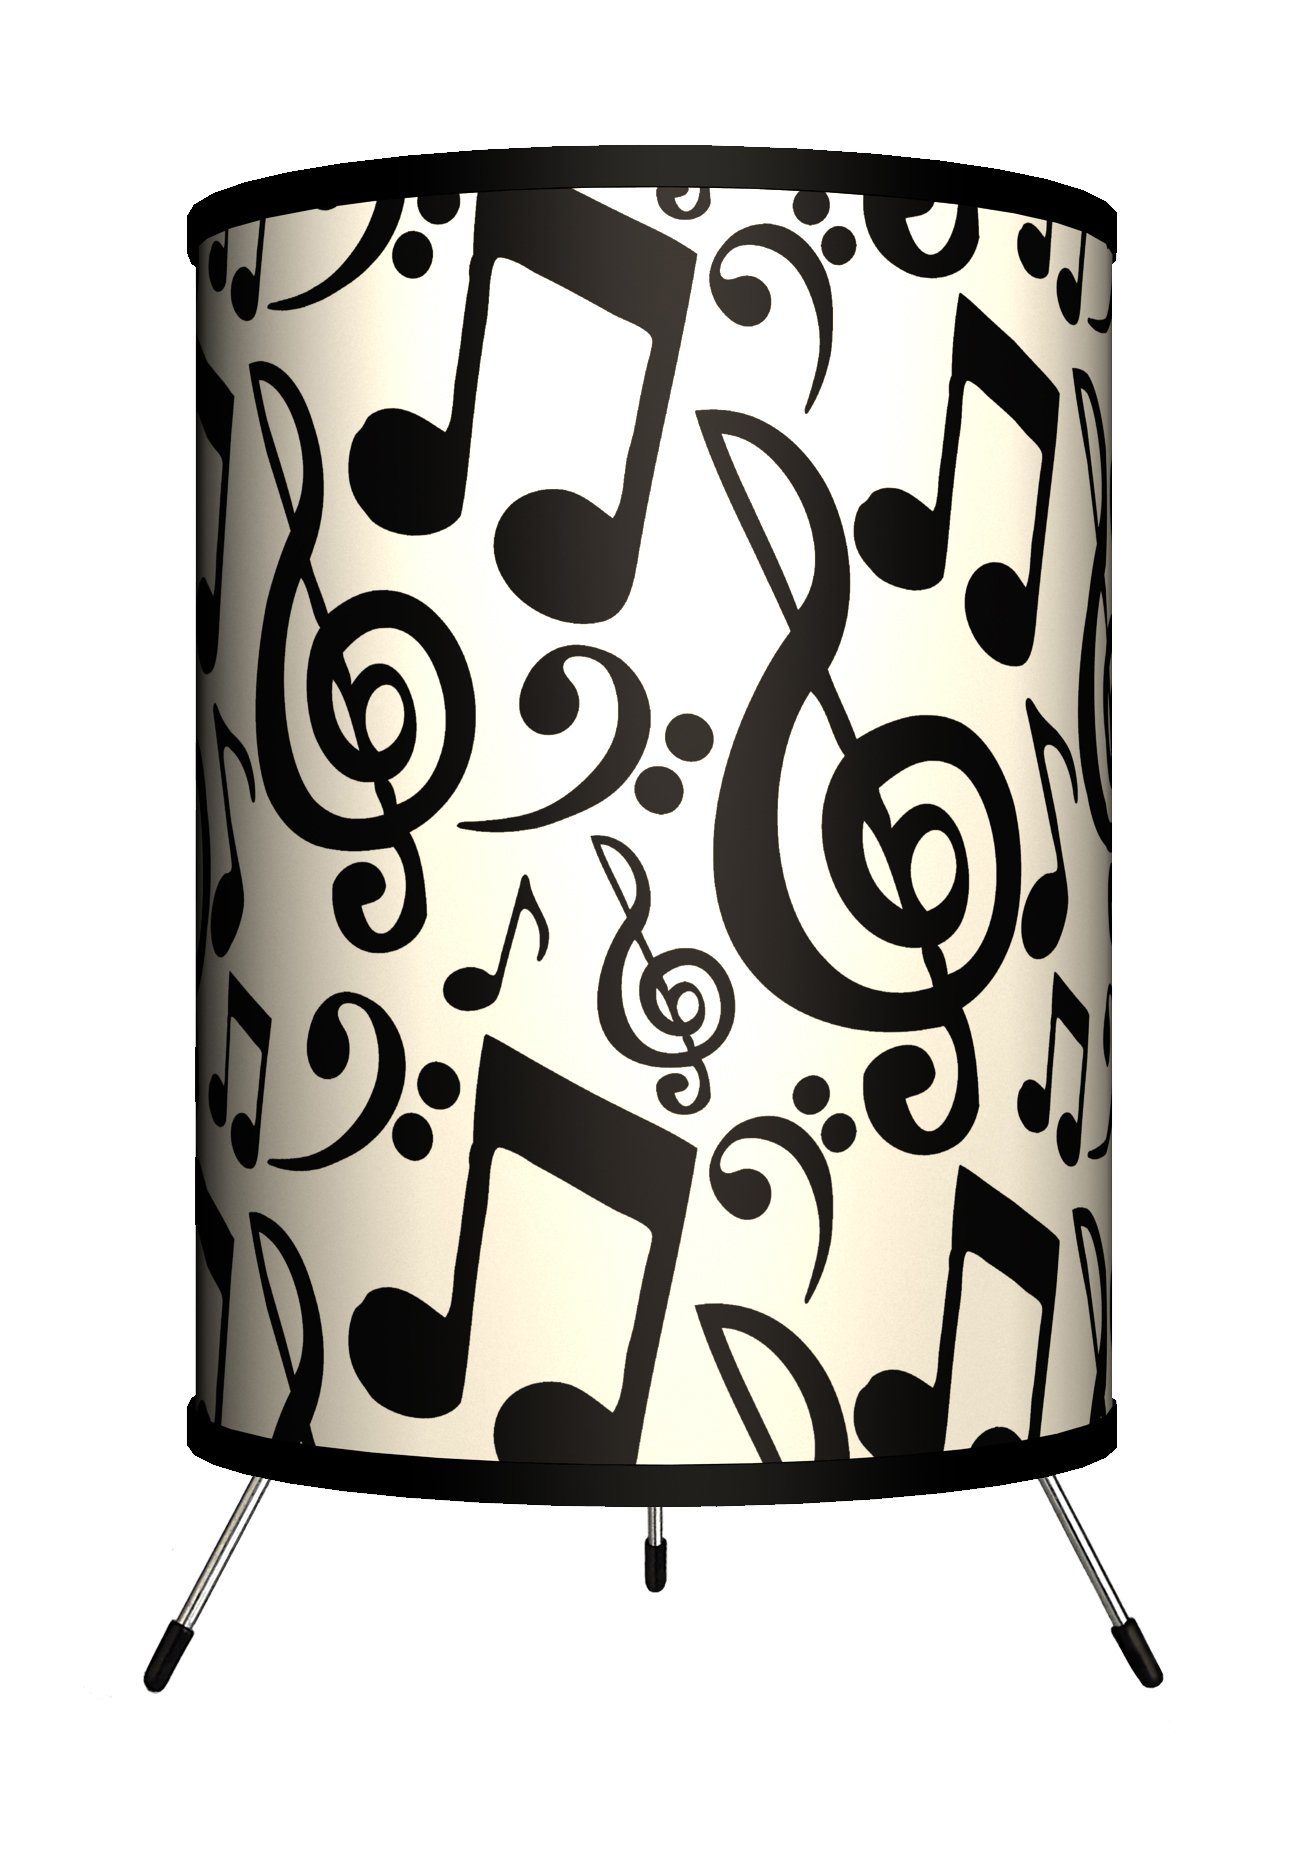 Lamp-In-A-Box TRI-MUS-NOTAT Music - Musical Notation Tripod Lamp, 8'' x 8'' x 14''